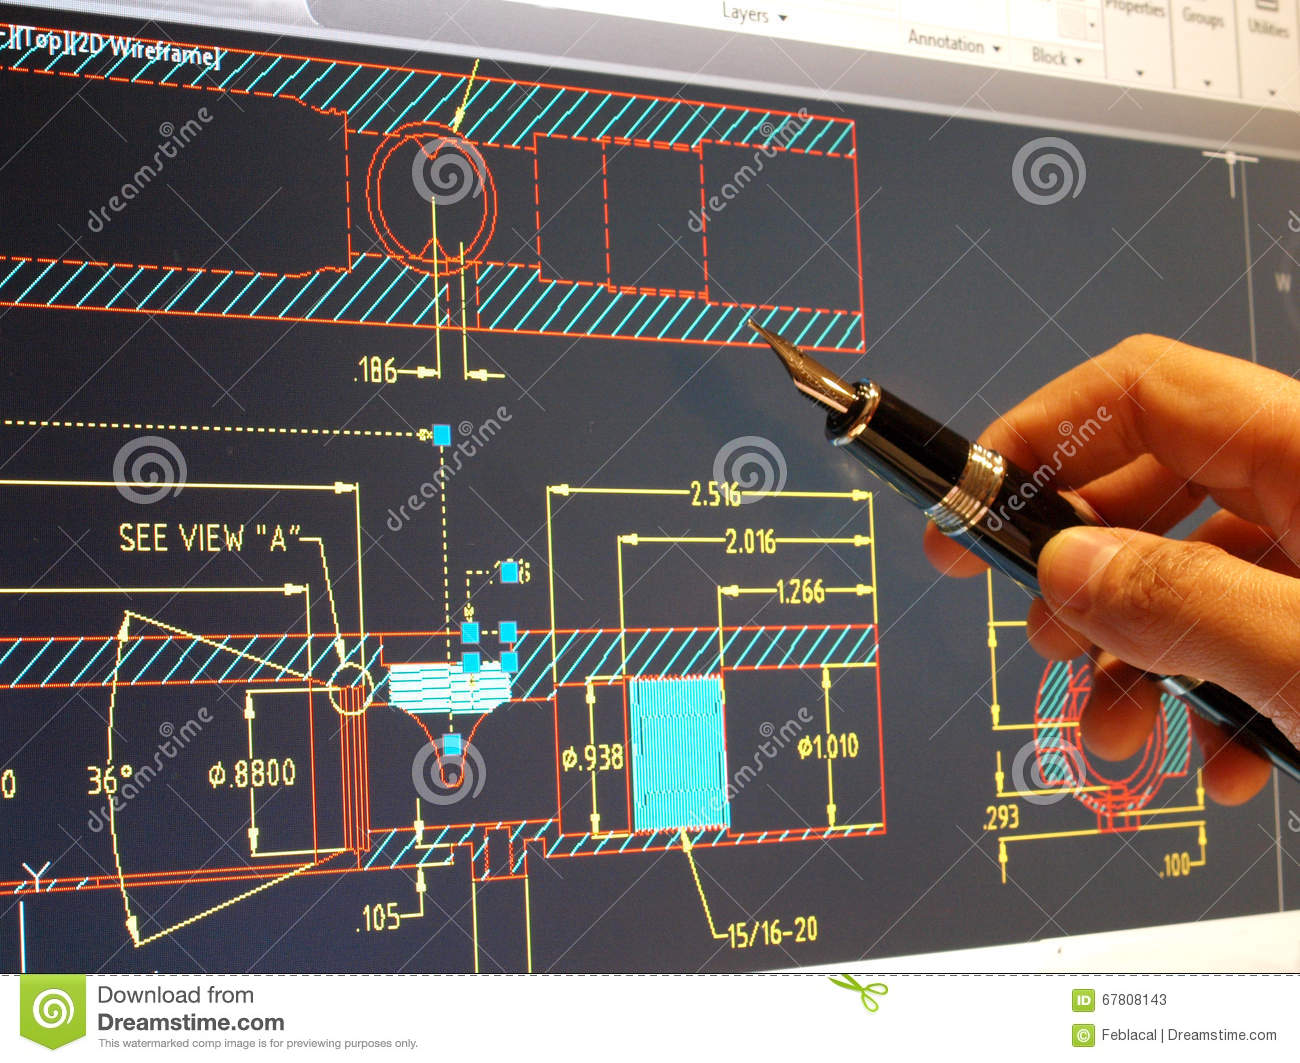 Cad blueprint stock image. Image of builder, drawing - 67808143